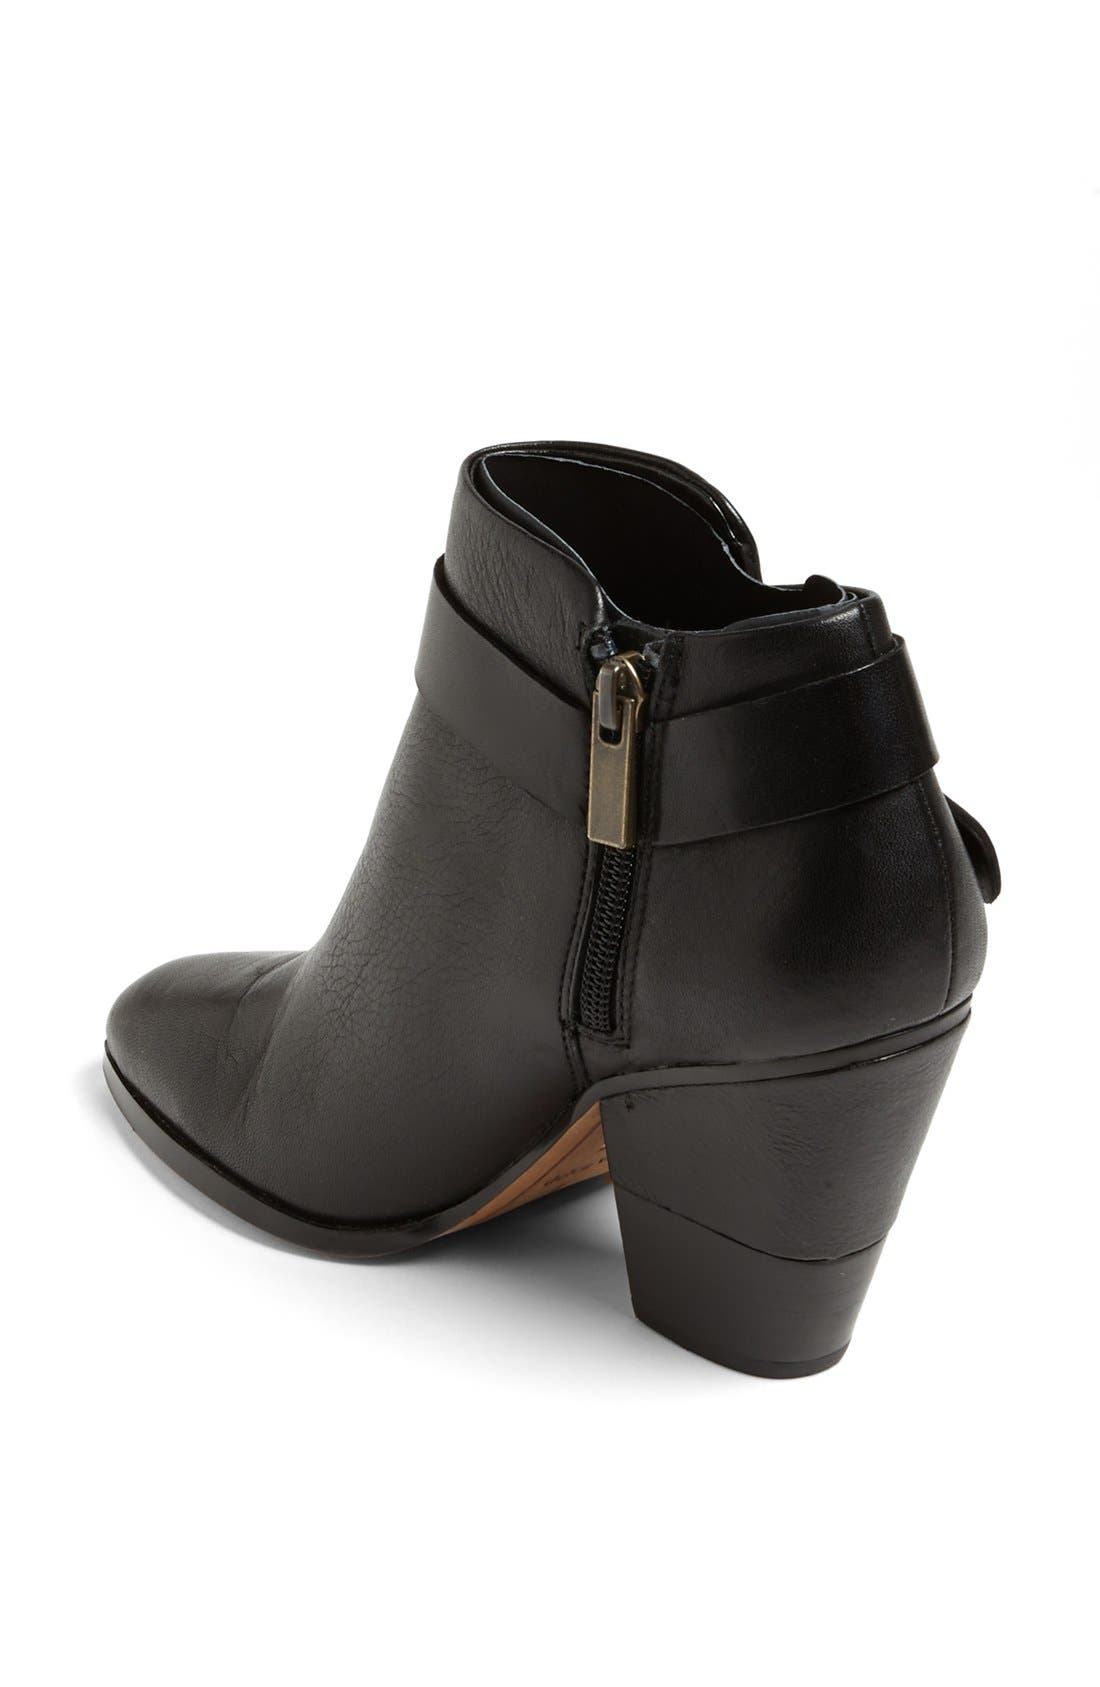 DOLCE VITA,                             'Hilary' Bootie,                             Alternate thumbnail 4, color,                             001